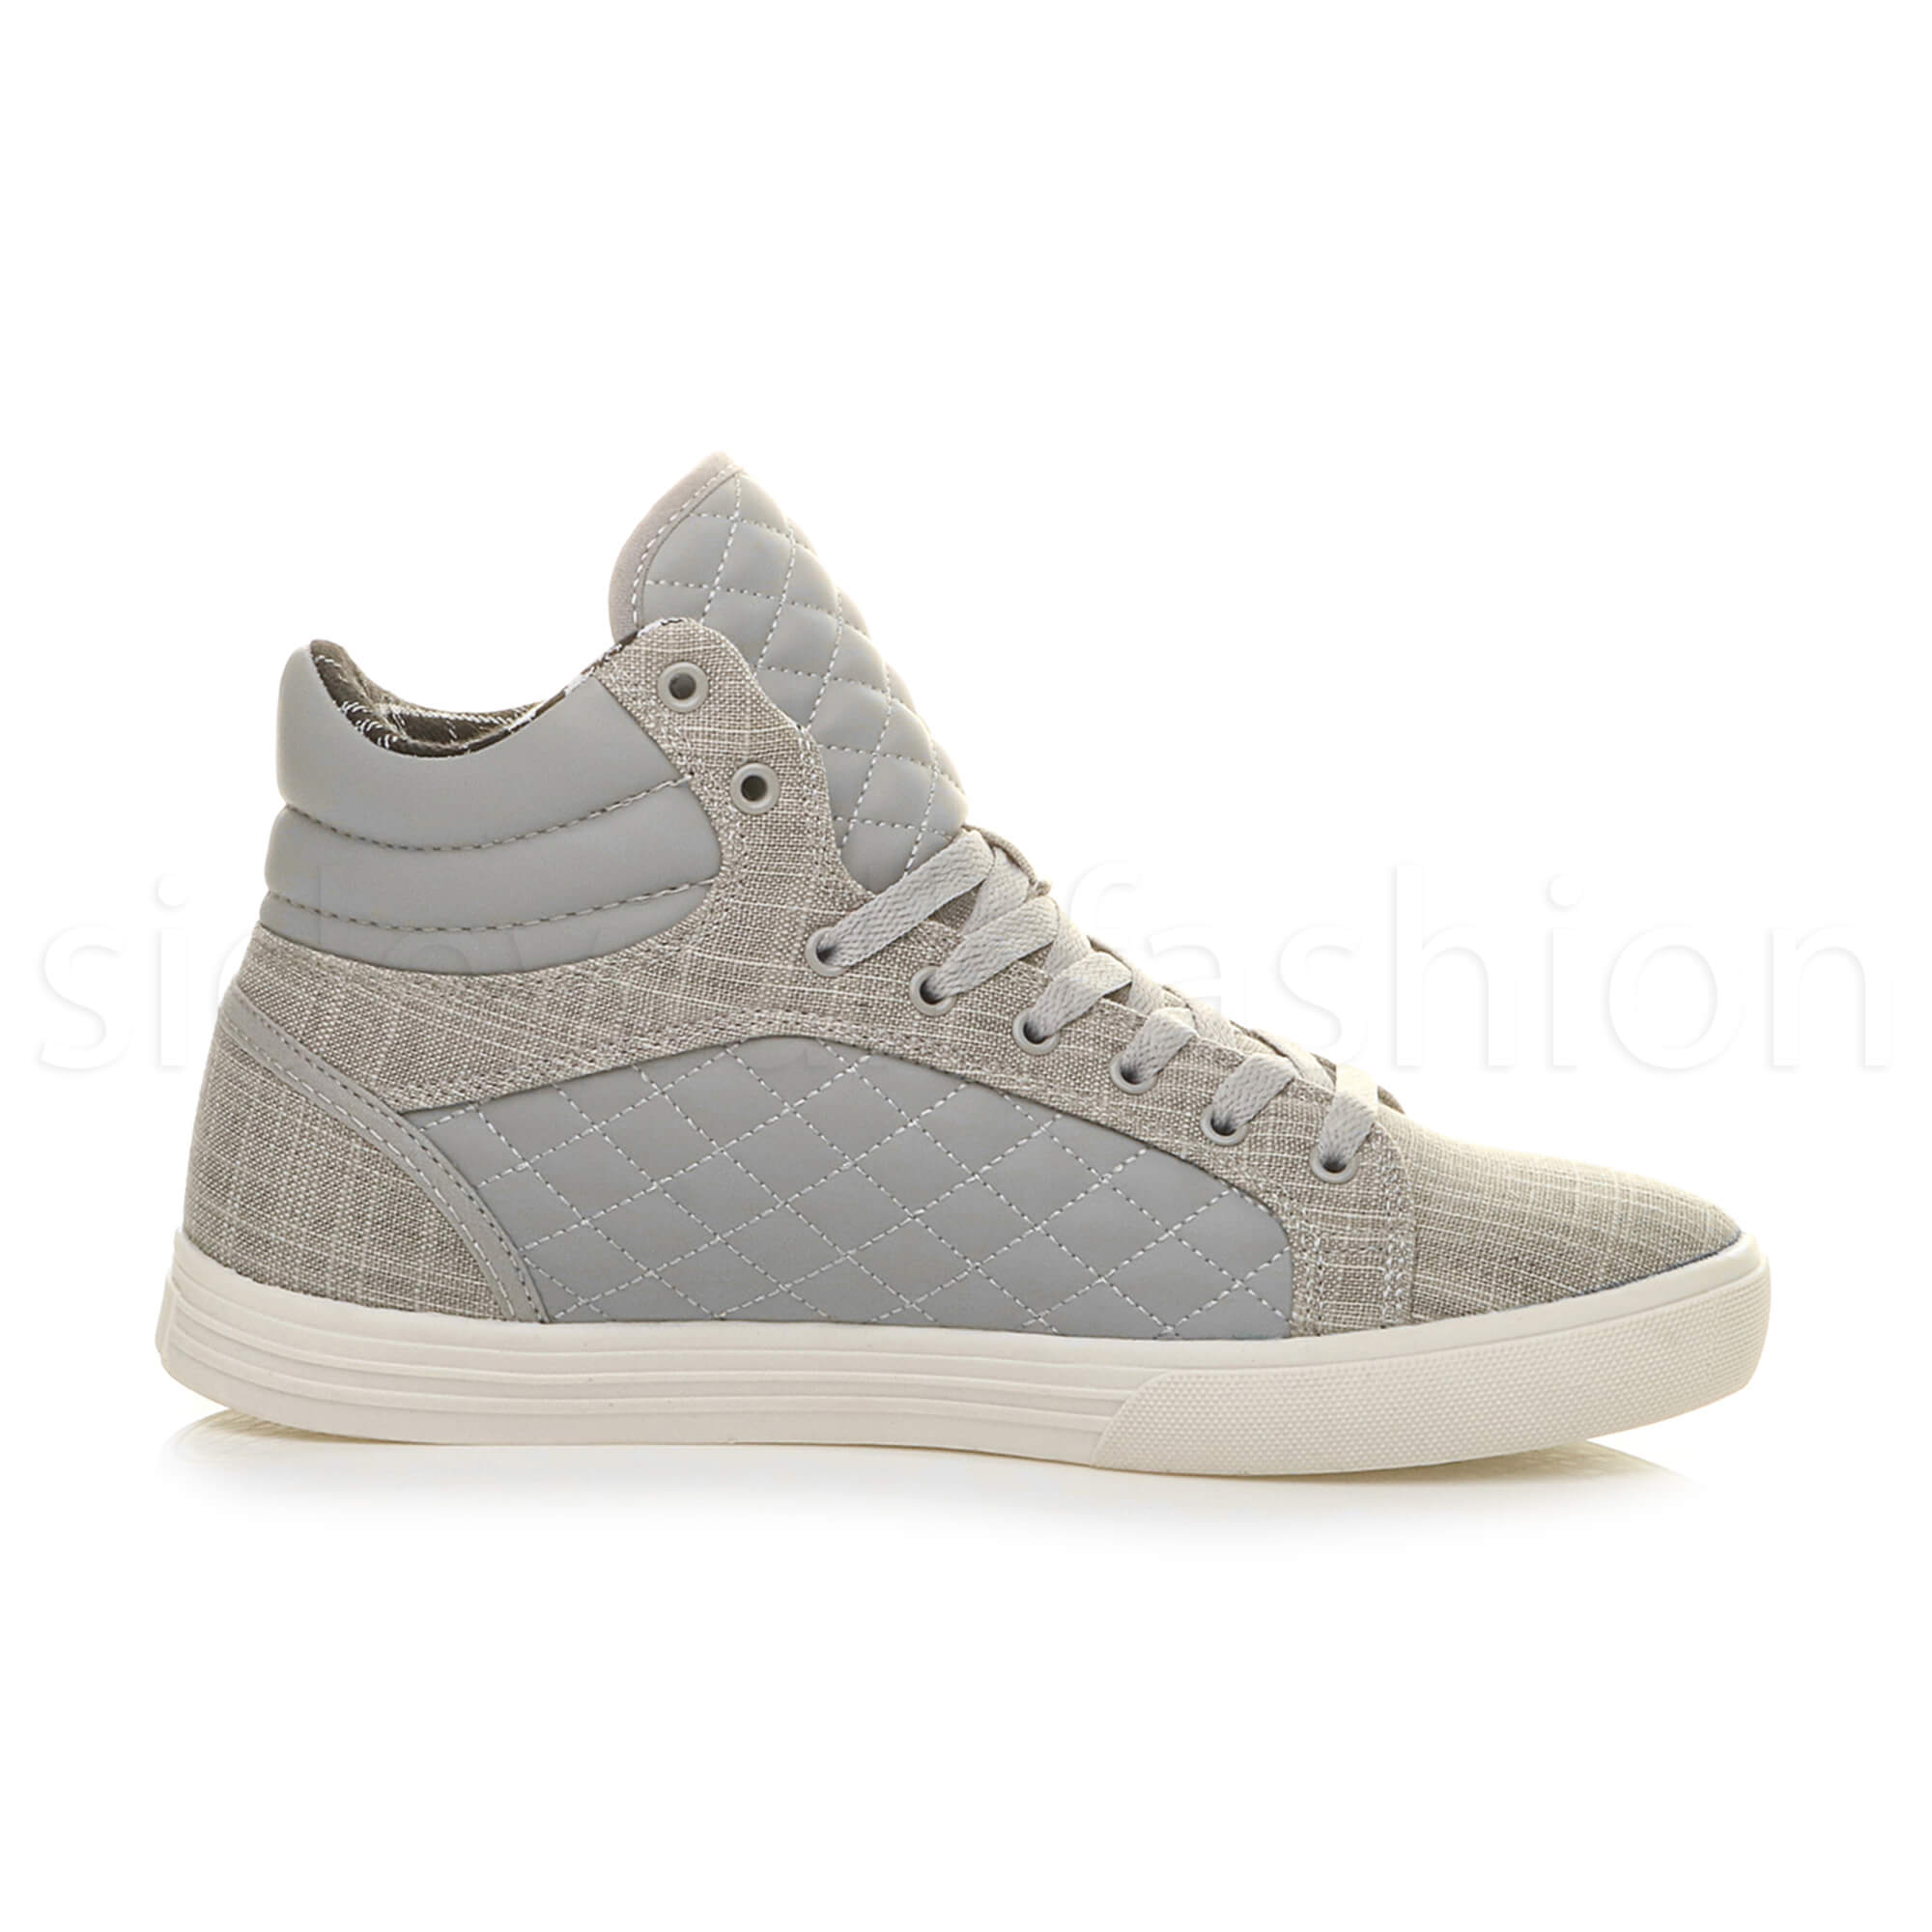 Mens-flat-lace-up-quilted-casual-hi-high-top-ankle-boots-trainers-sneakers-size thumbnail 18